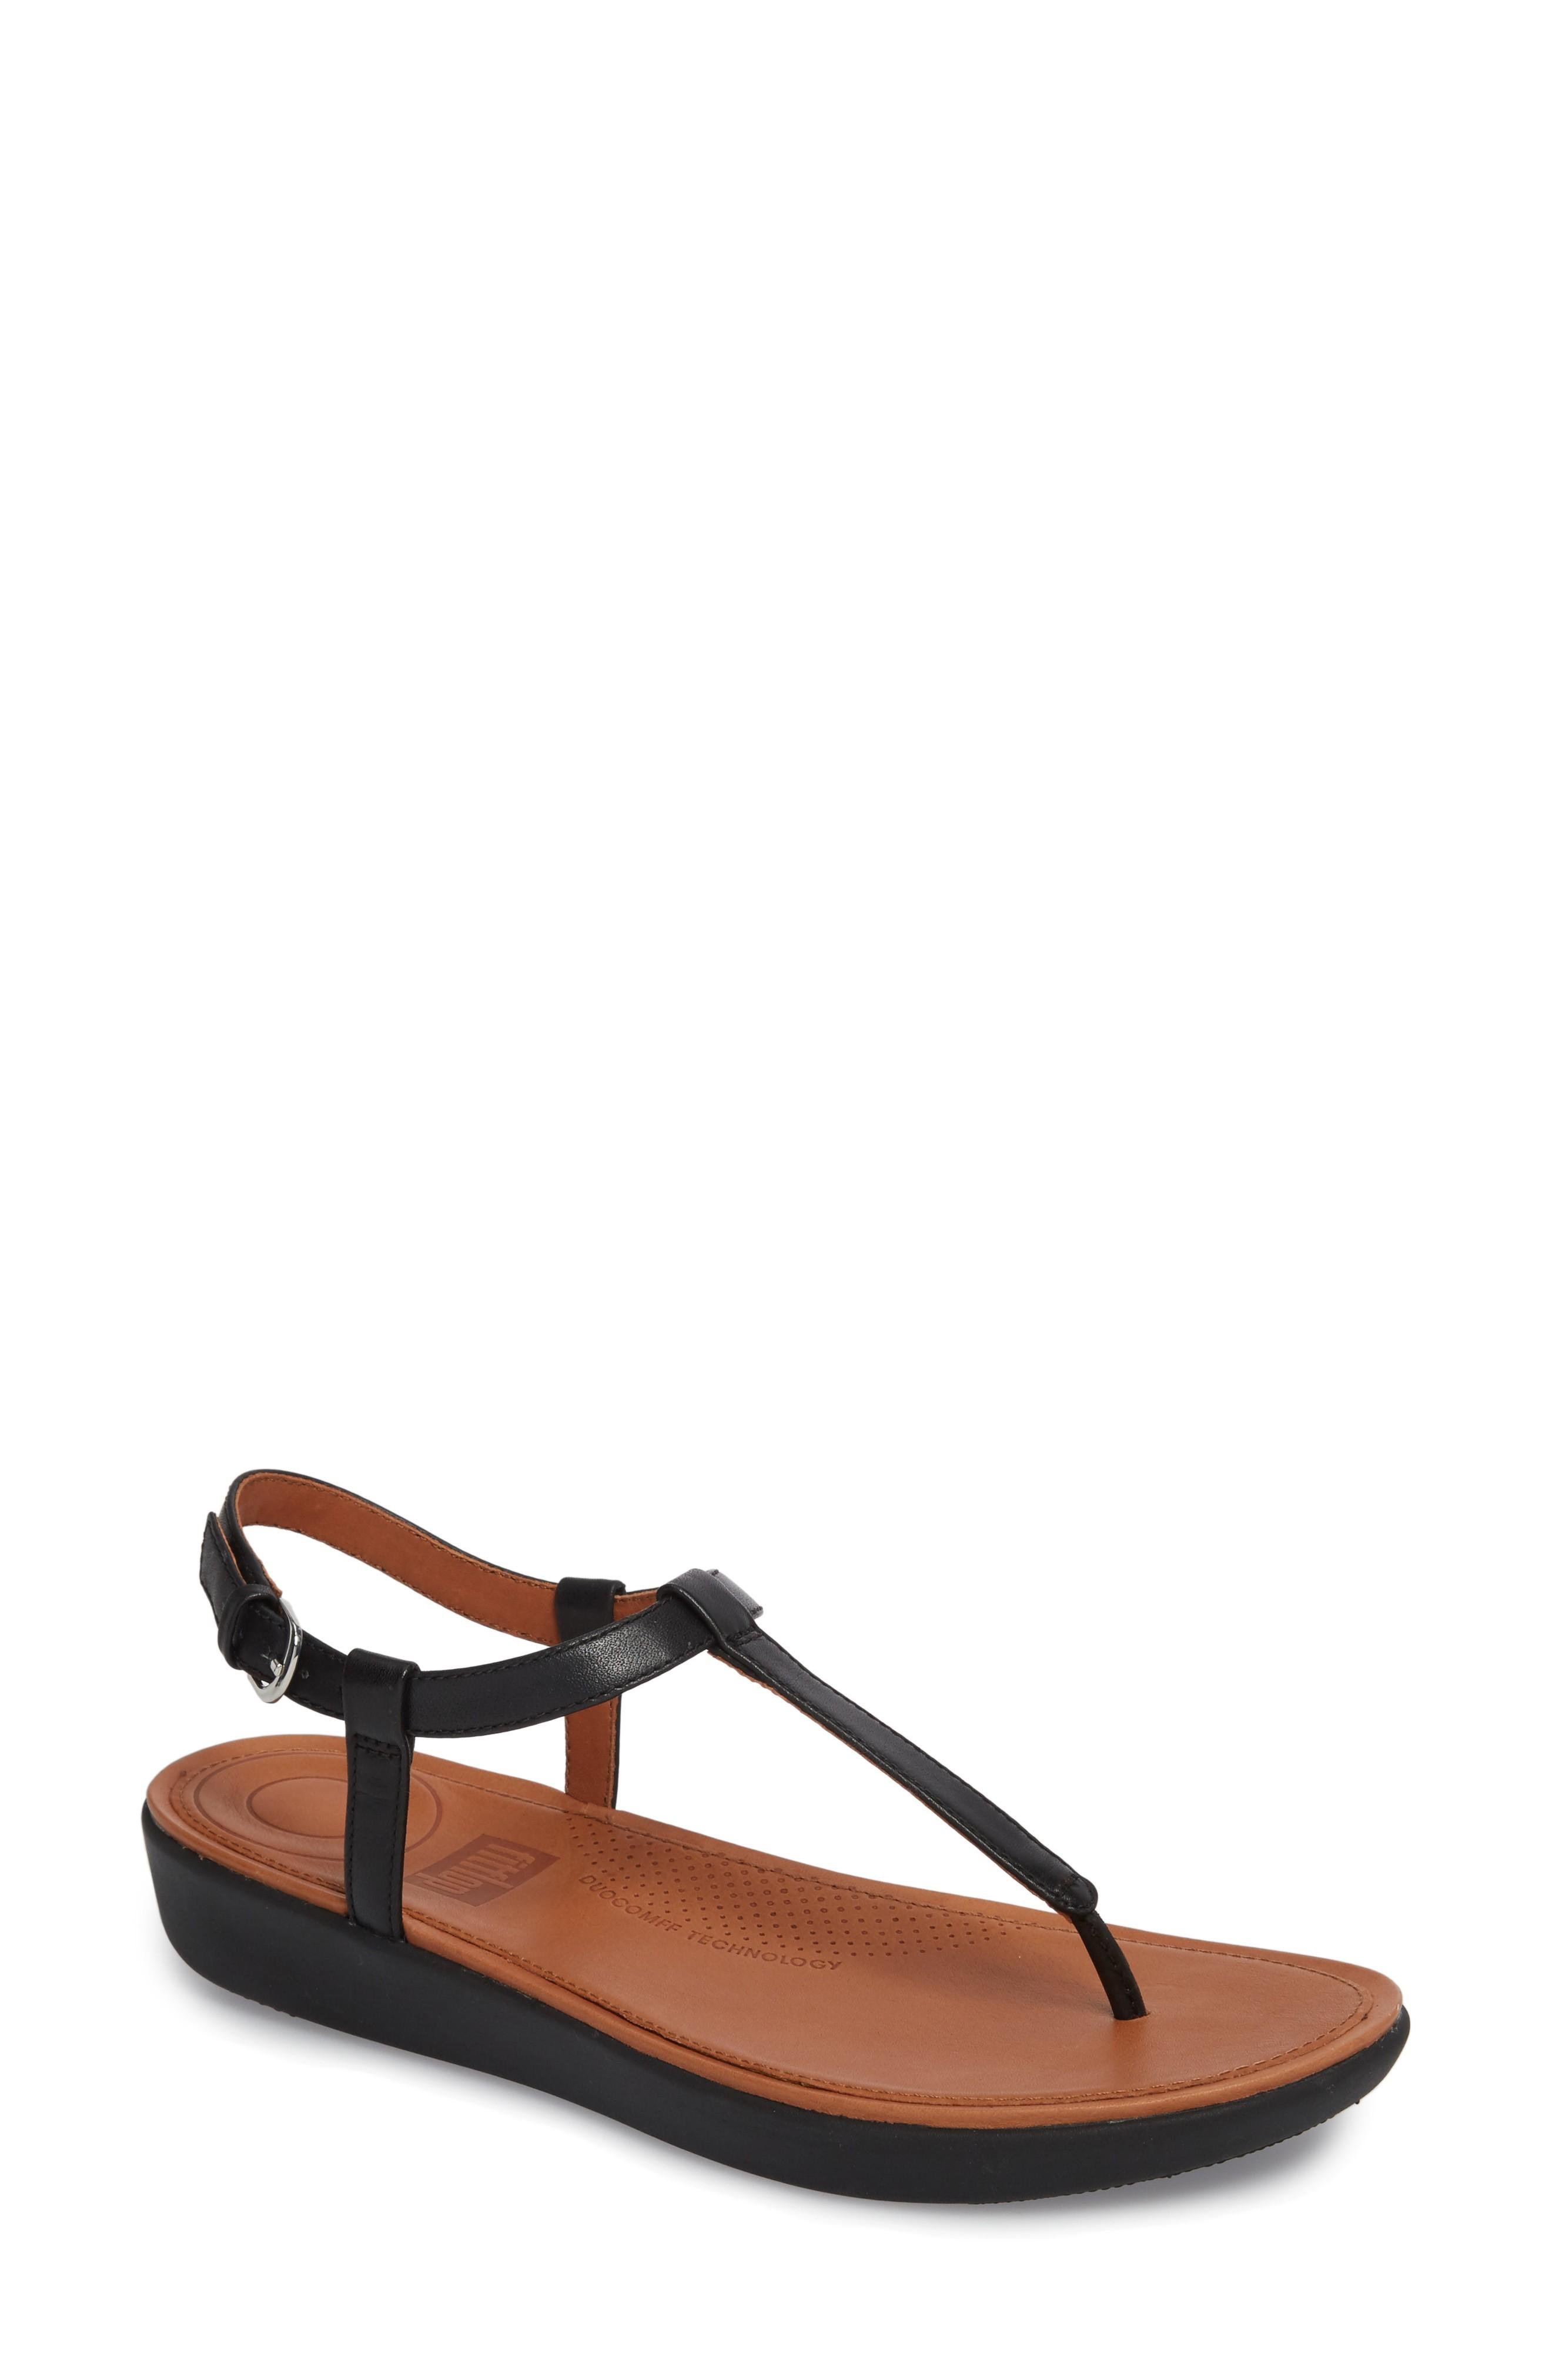 5ee072c8990e Fitflop Tia Thong Sandal In Black Leather